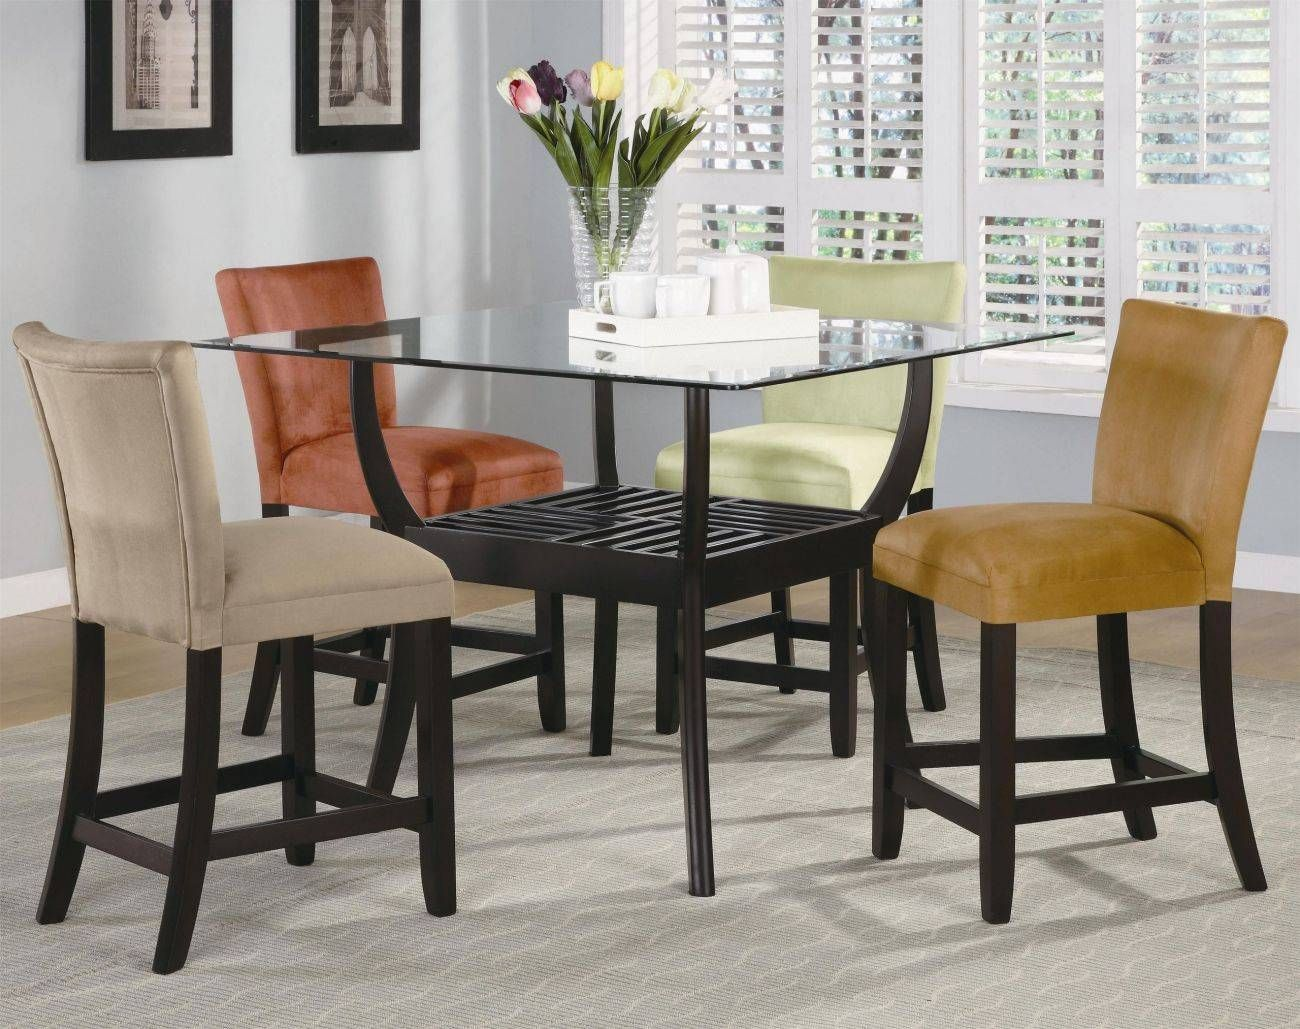 17++ High top dining table and chairs Best Seller